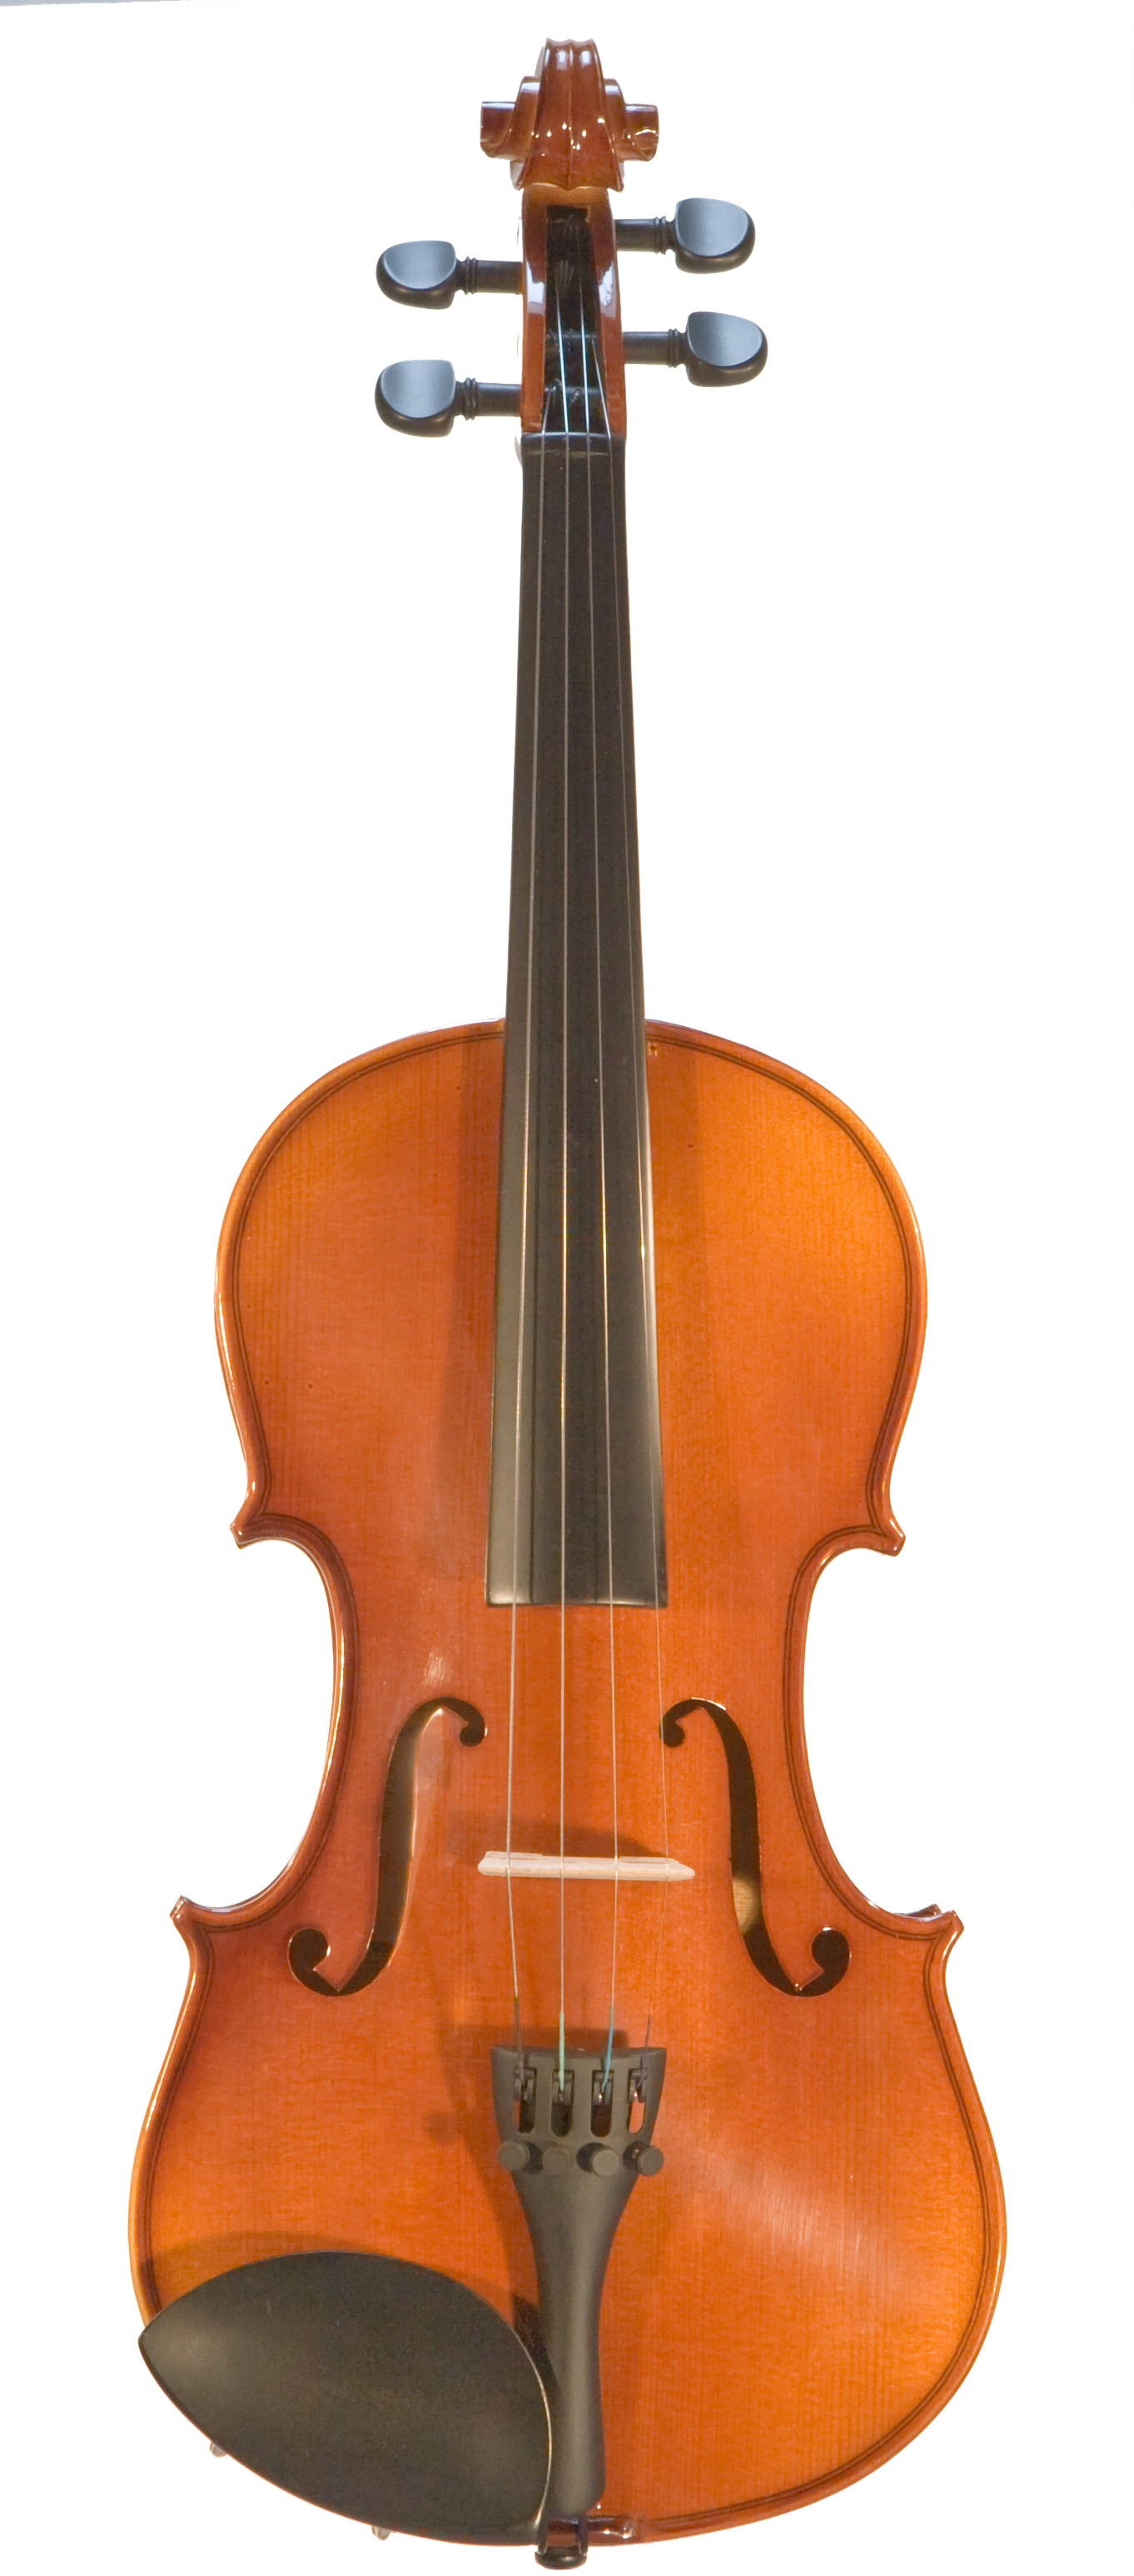 http://upload.wikimedia.org/wikipedia/commons/3/3a/Violin_front.jpg